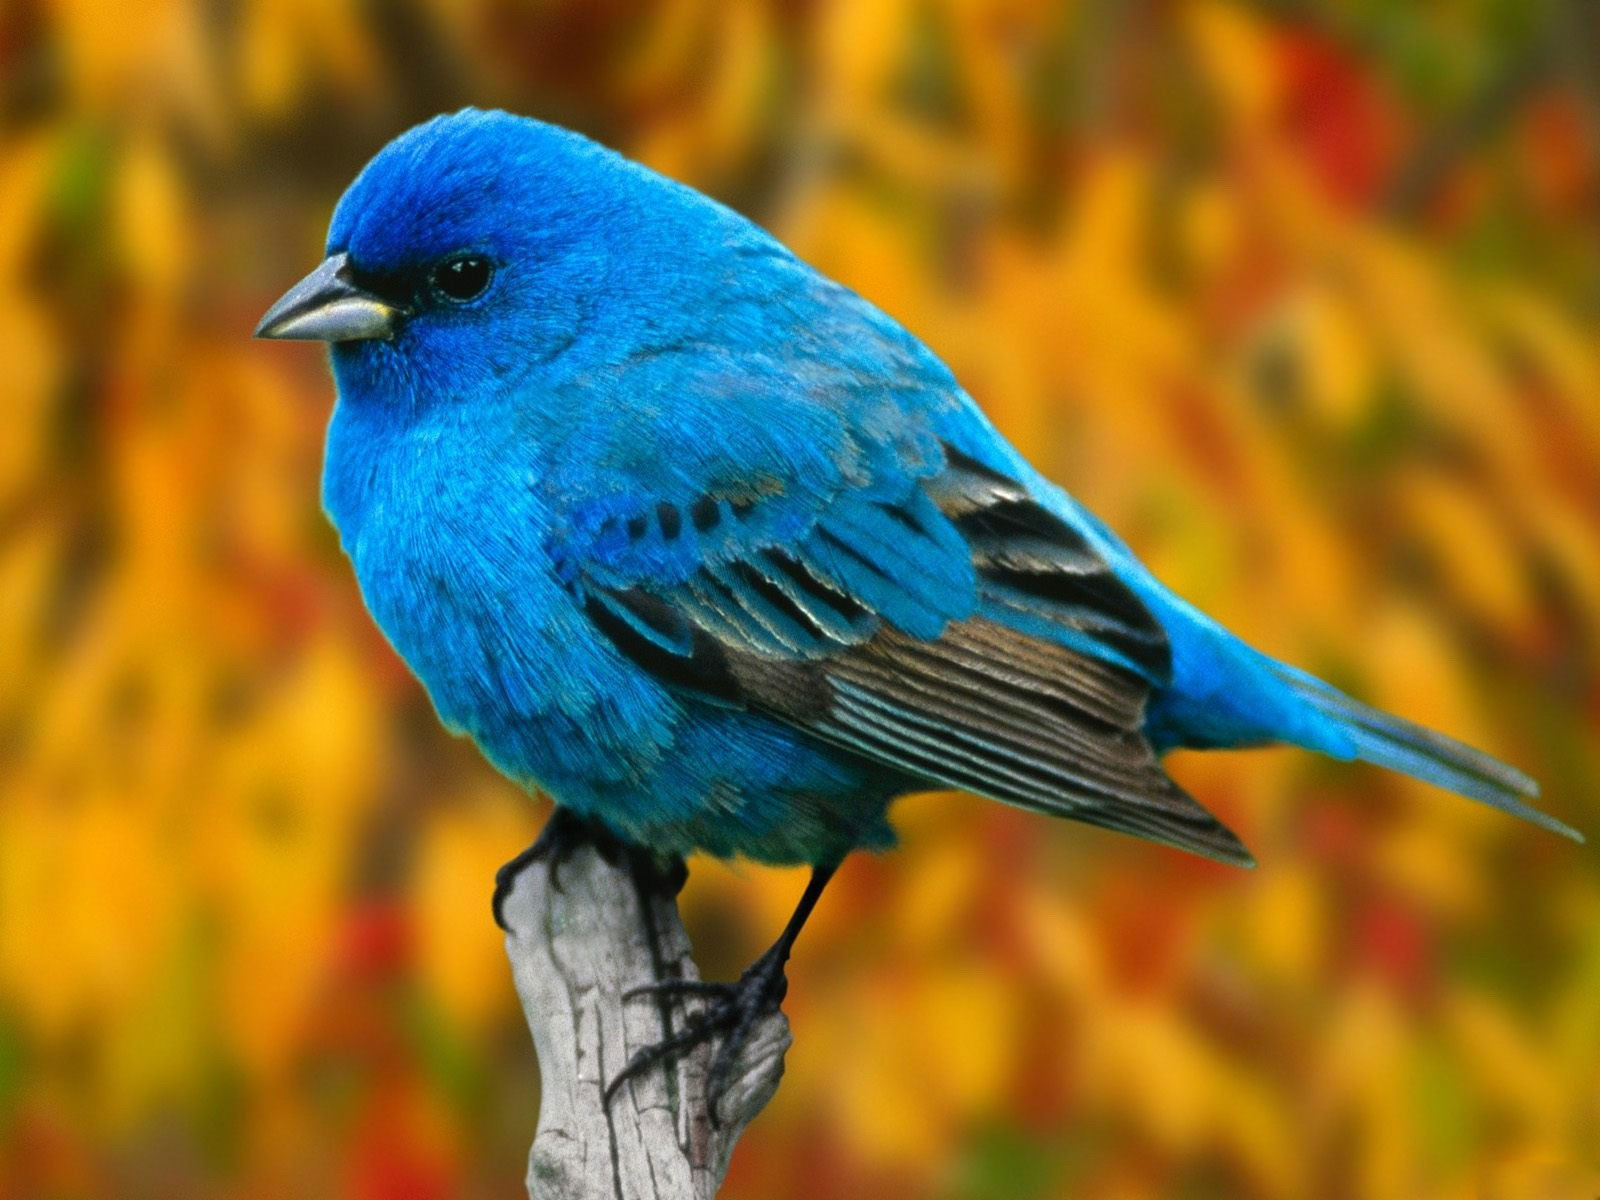 Birds hd wallpapers, bird wallpapers | Amazing Wallpapers